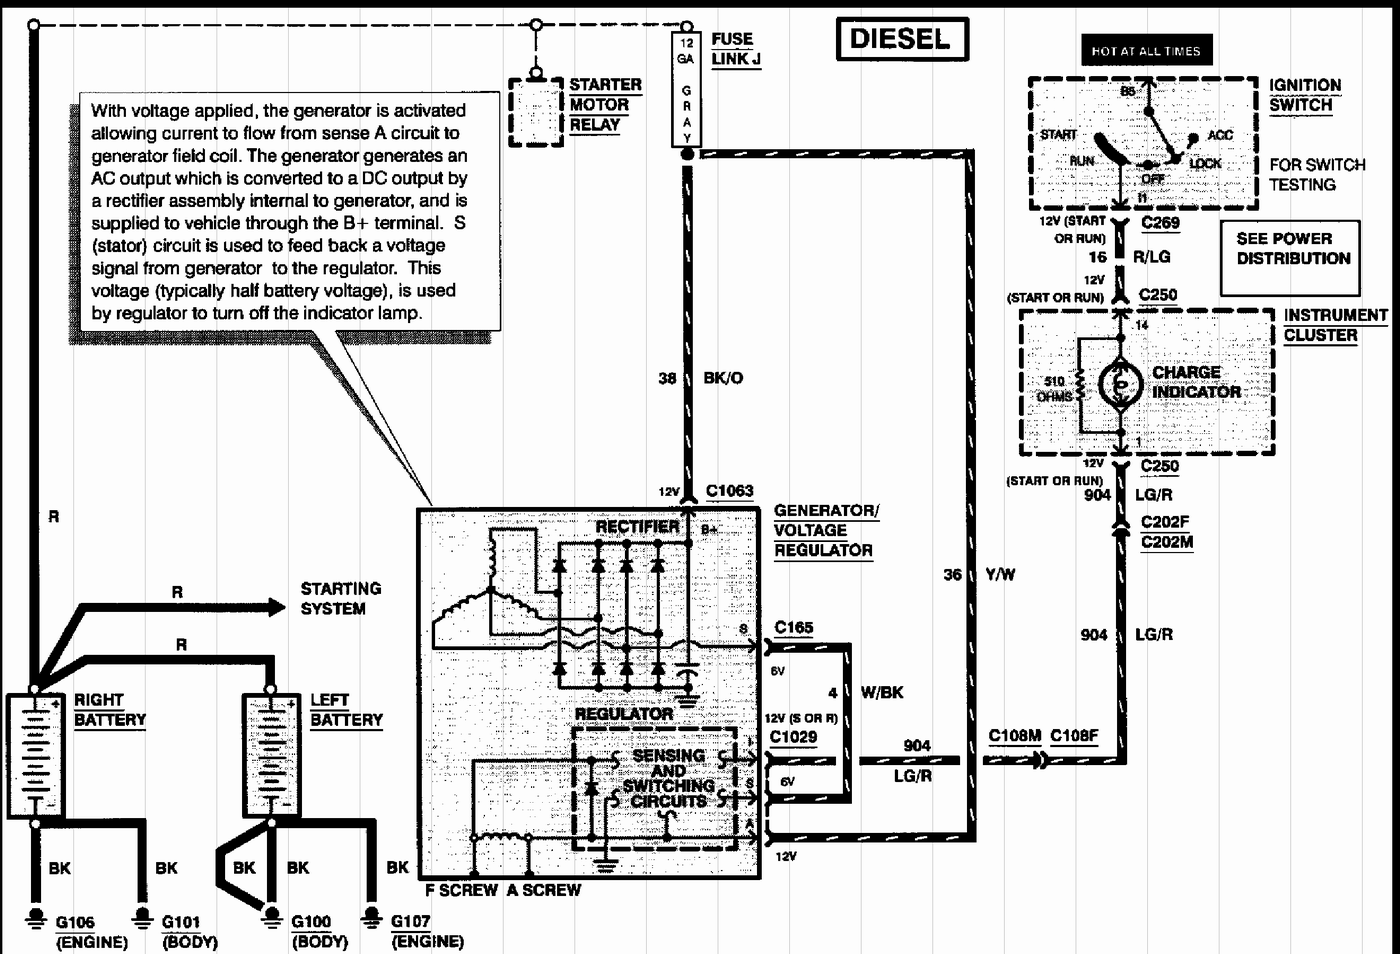 hight resolution of 97 ford taurus wiring diagram eeec